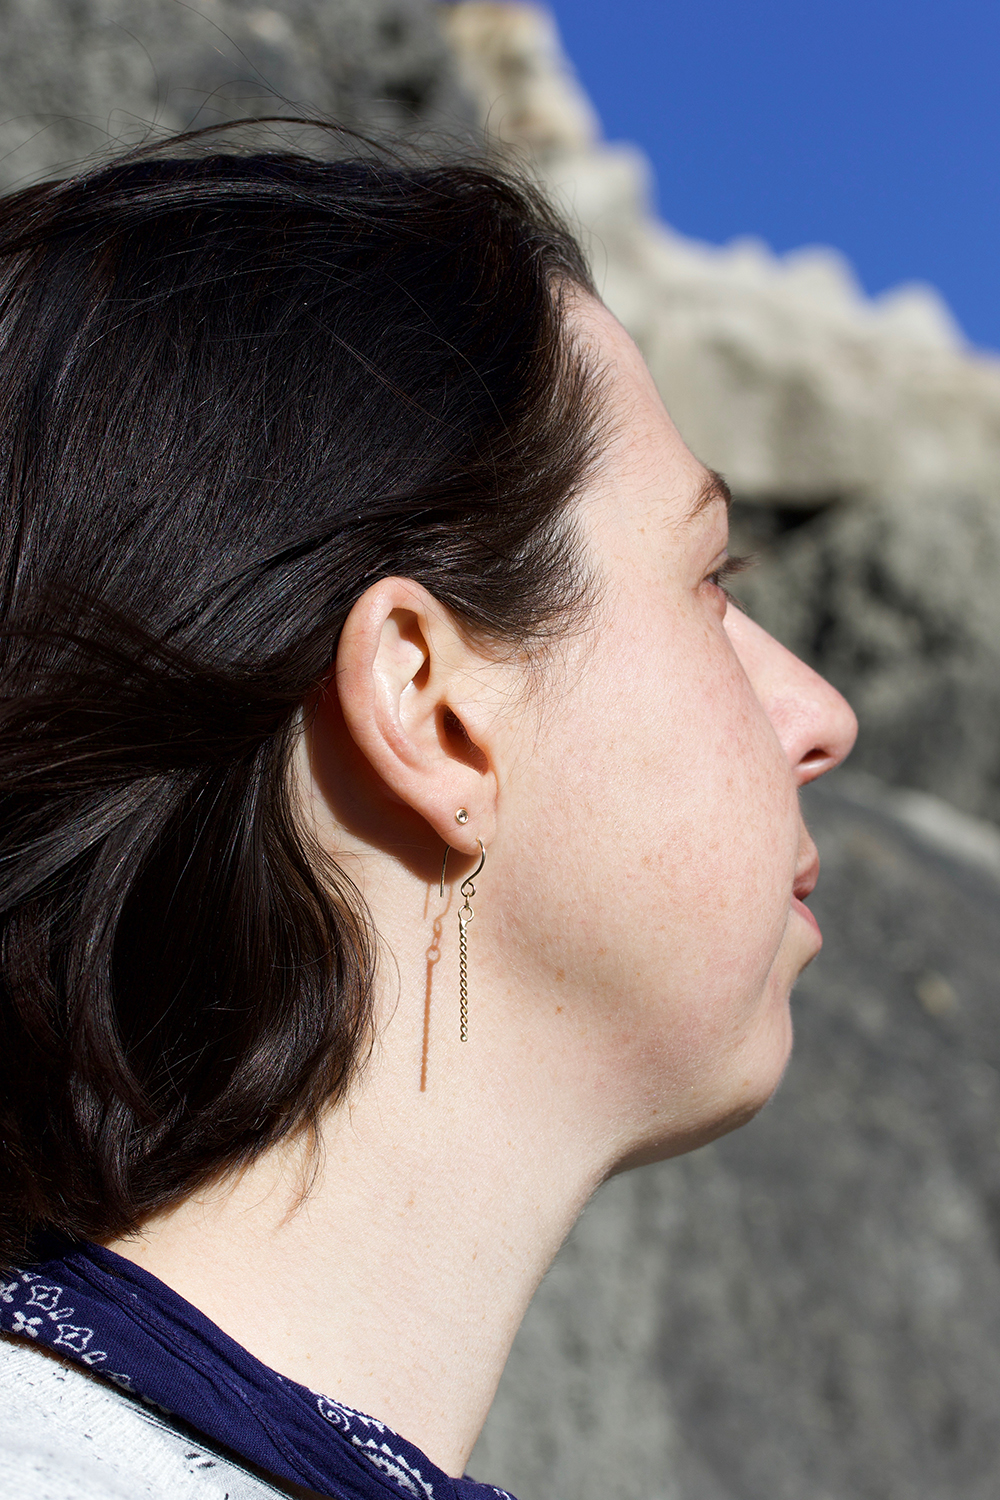 yours truly, wearing the  Rope Drop  earrings + r osecut diamond studs  in the Bisti De Na Zin wilderness